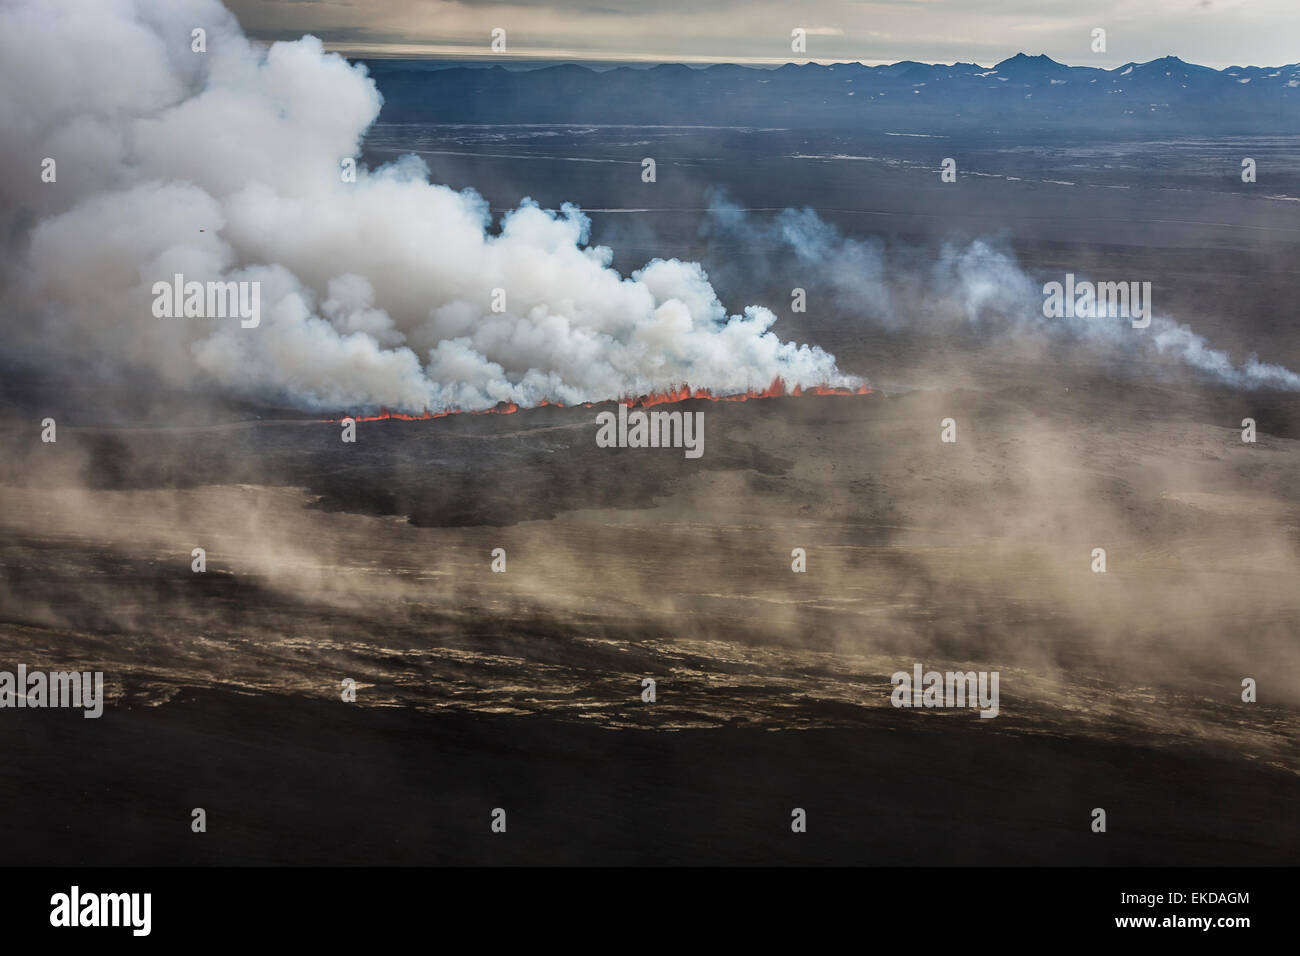 Lava and plumes from the Holuhraun Fissure by the Bardarbunga Volcano, Iceland - Stock Image